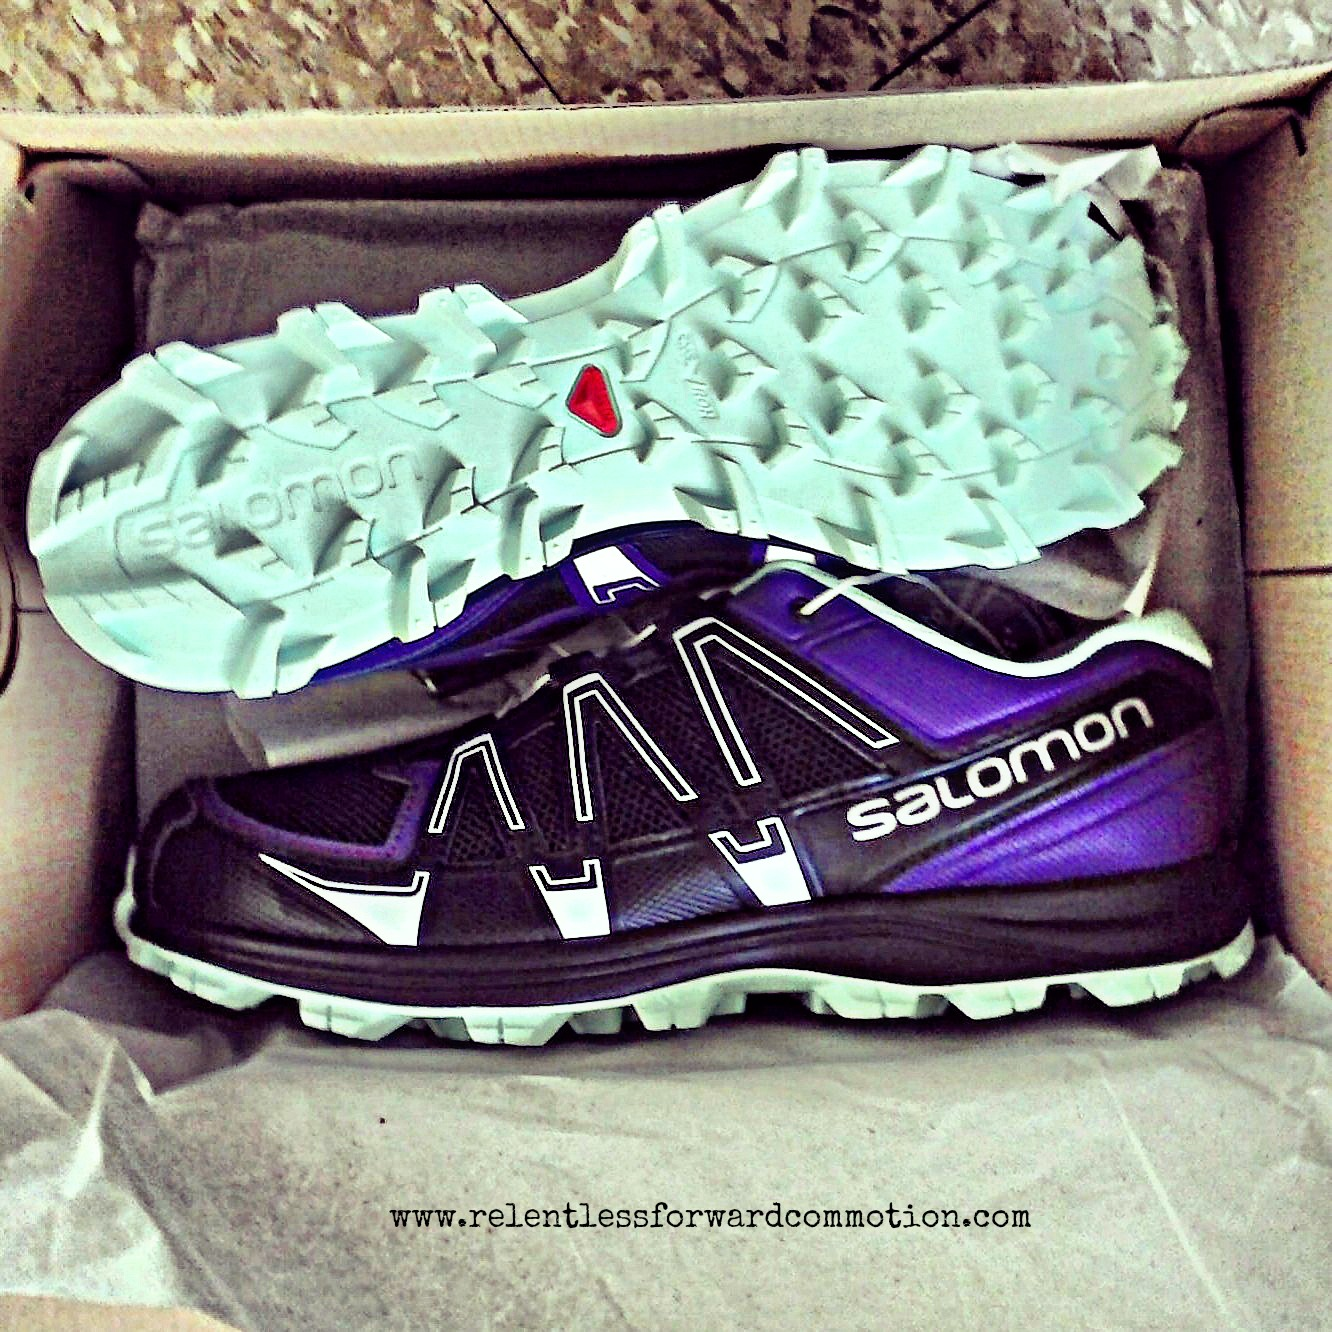 Italy Mens Salomon Fell Raiser - 2014 02 Salomon Fellraiser Review